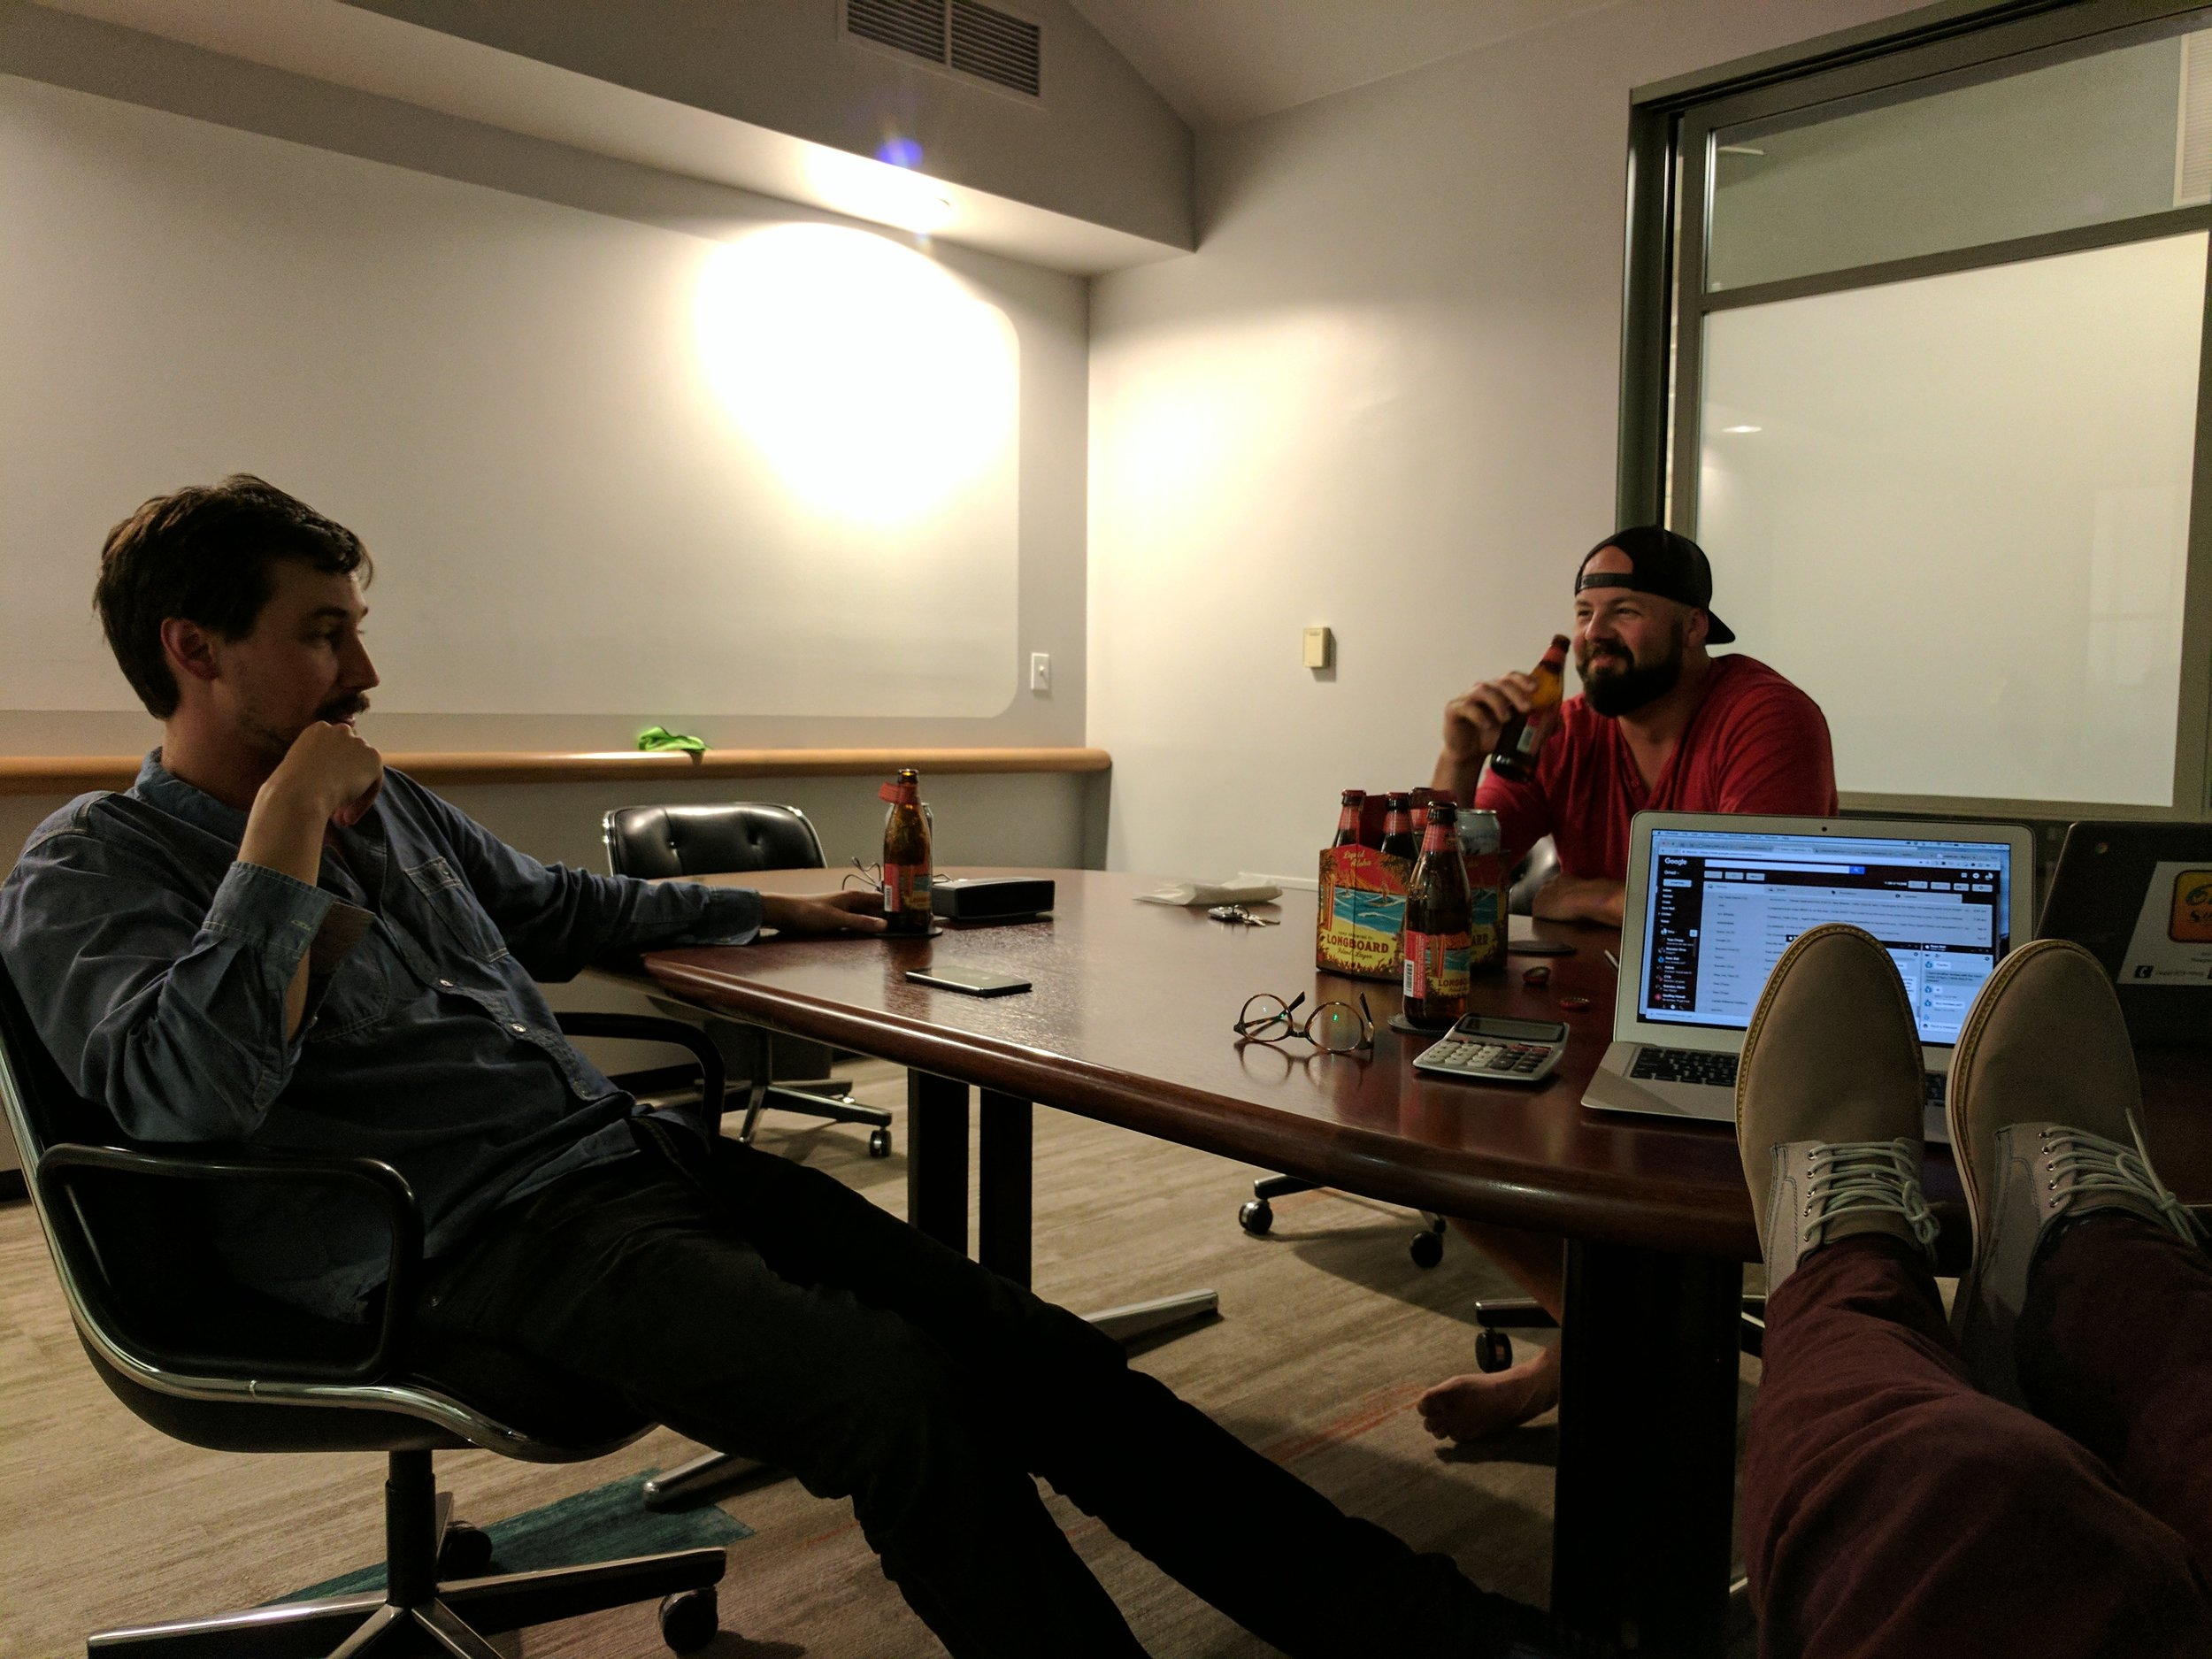 Sometimes after hours meetings have beers (if you come to our office!)